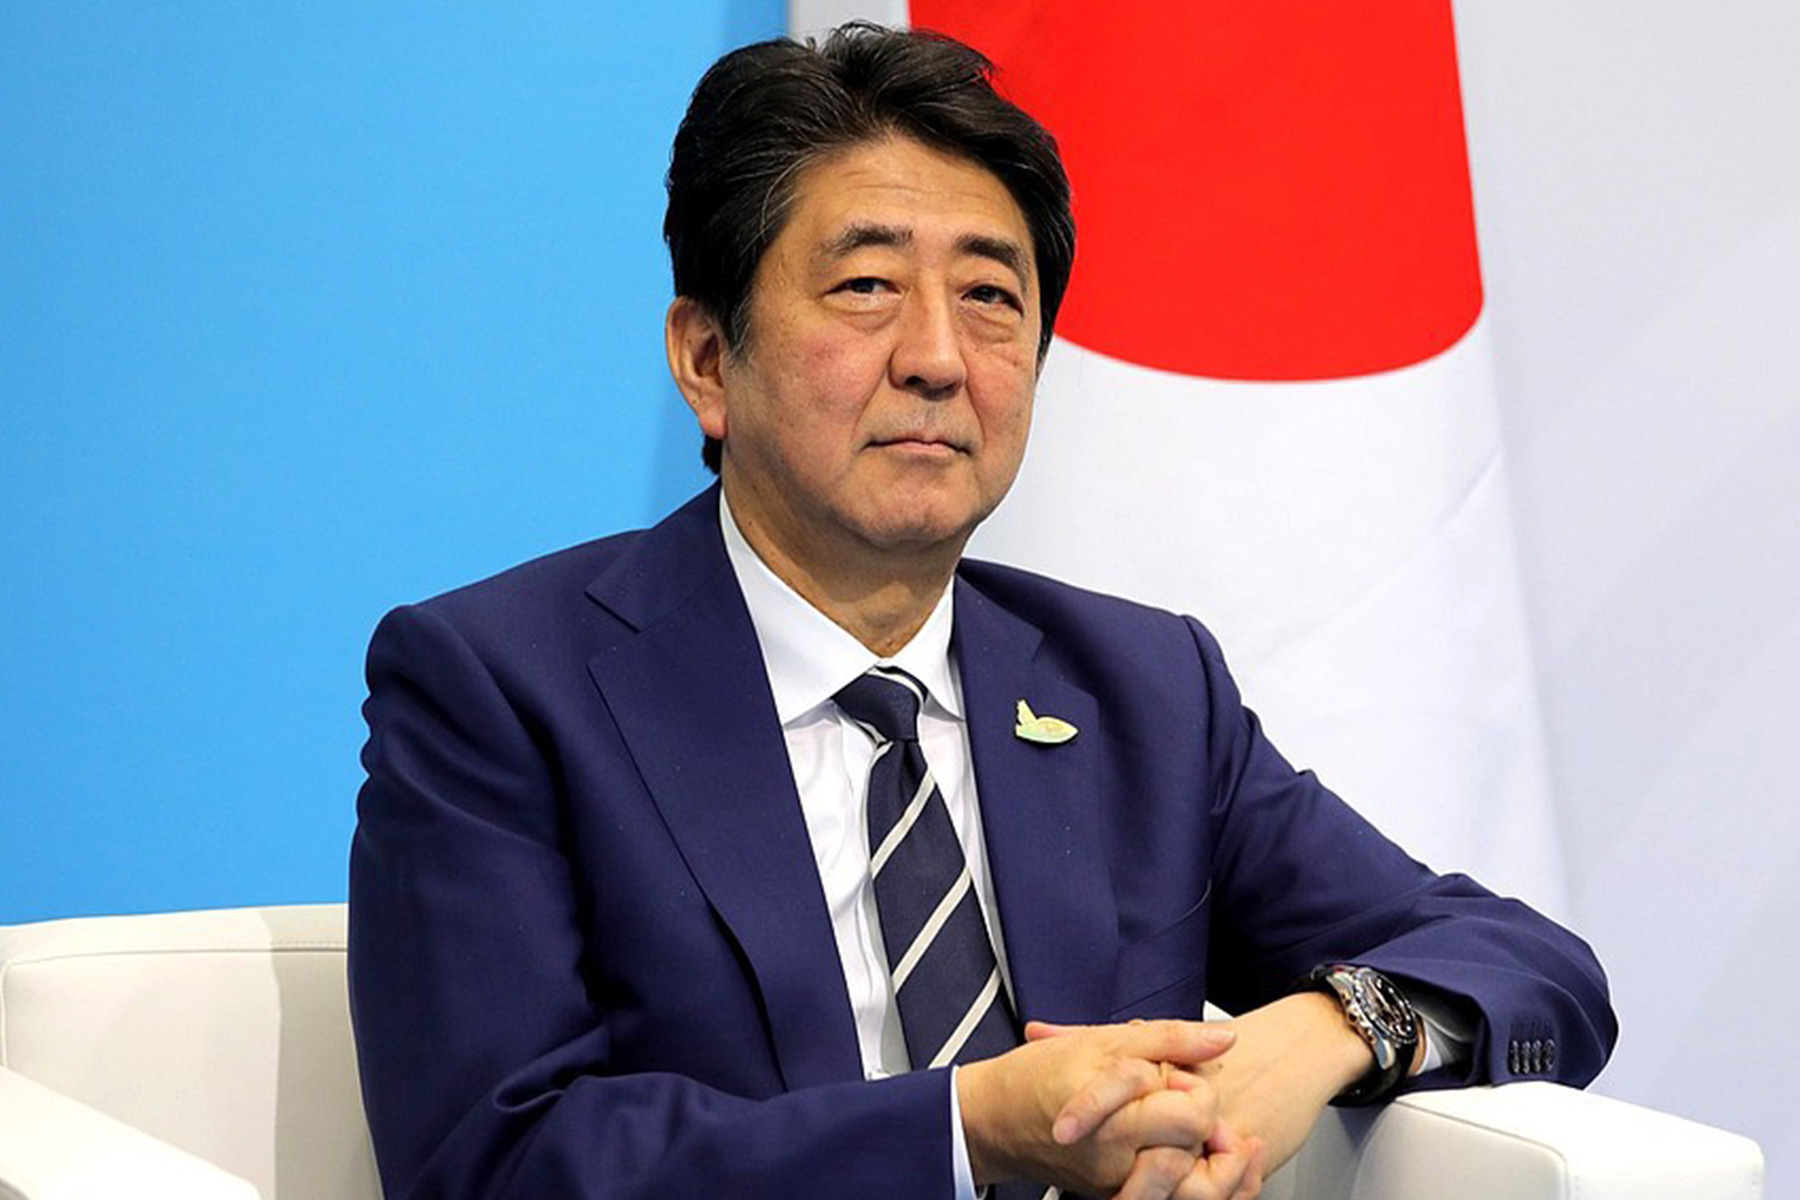 A New Trade Strategy for Japan - In face of the escalating trade war between the United States and China, Japan is pursuing a strategy of bilateral trade relationships to mitigate its harmful effects on the Japanese economy.